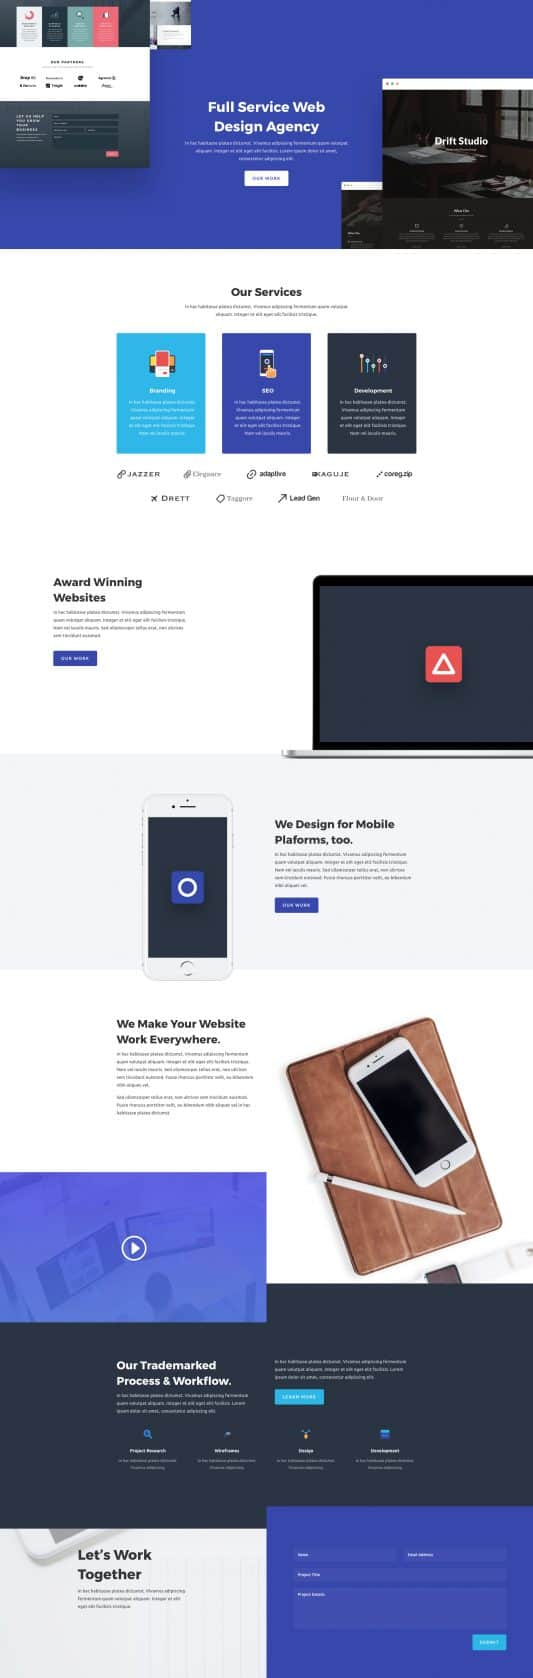 The Web Agency Page Style: Homepage Design 1